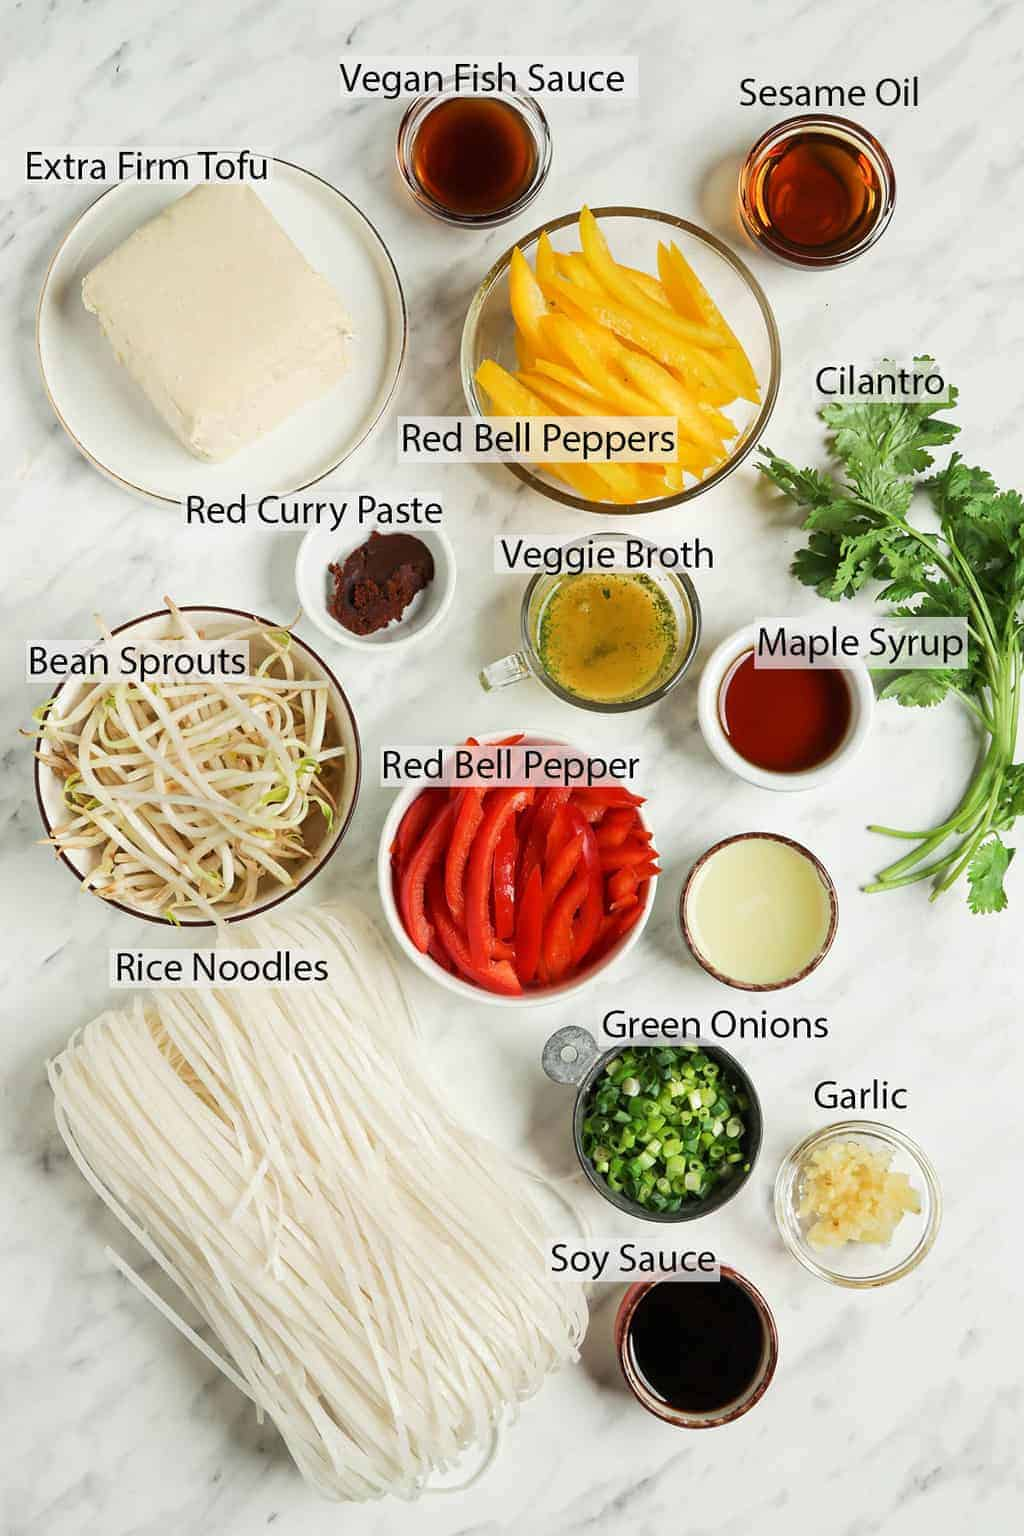 maple syrup, bell peppers, rice noodles, bean sprouts, veggie broth, red curry paste, cilantro, green onions, garlic, tamarind